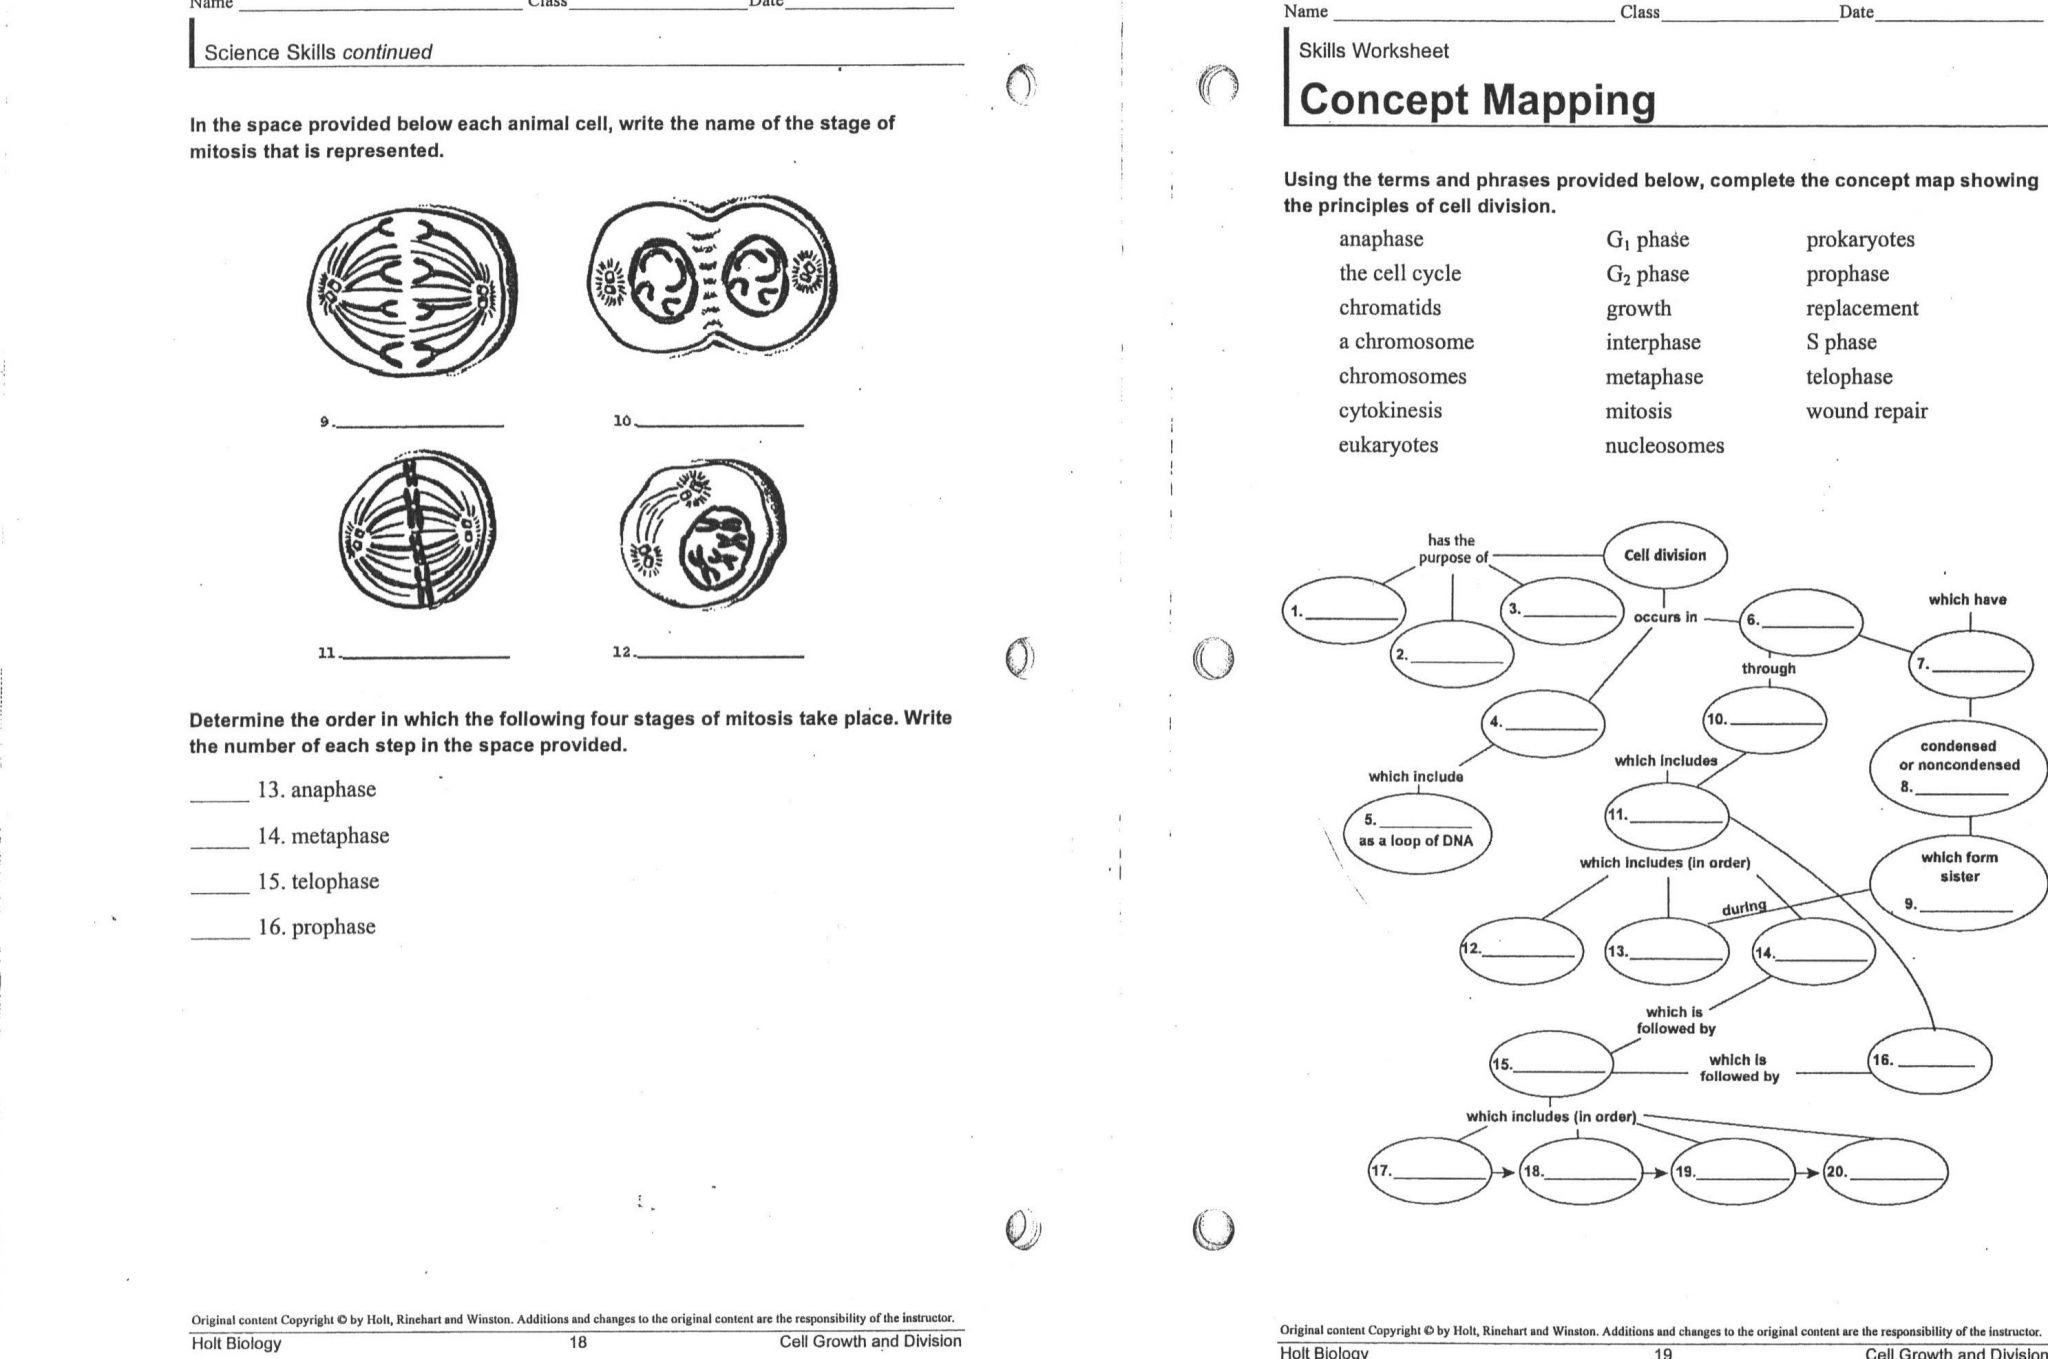 Skills Worksheet Concept Mapping Answers